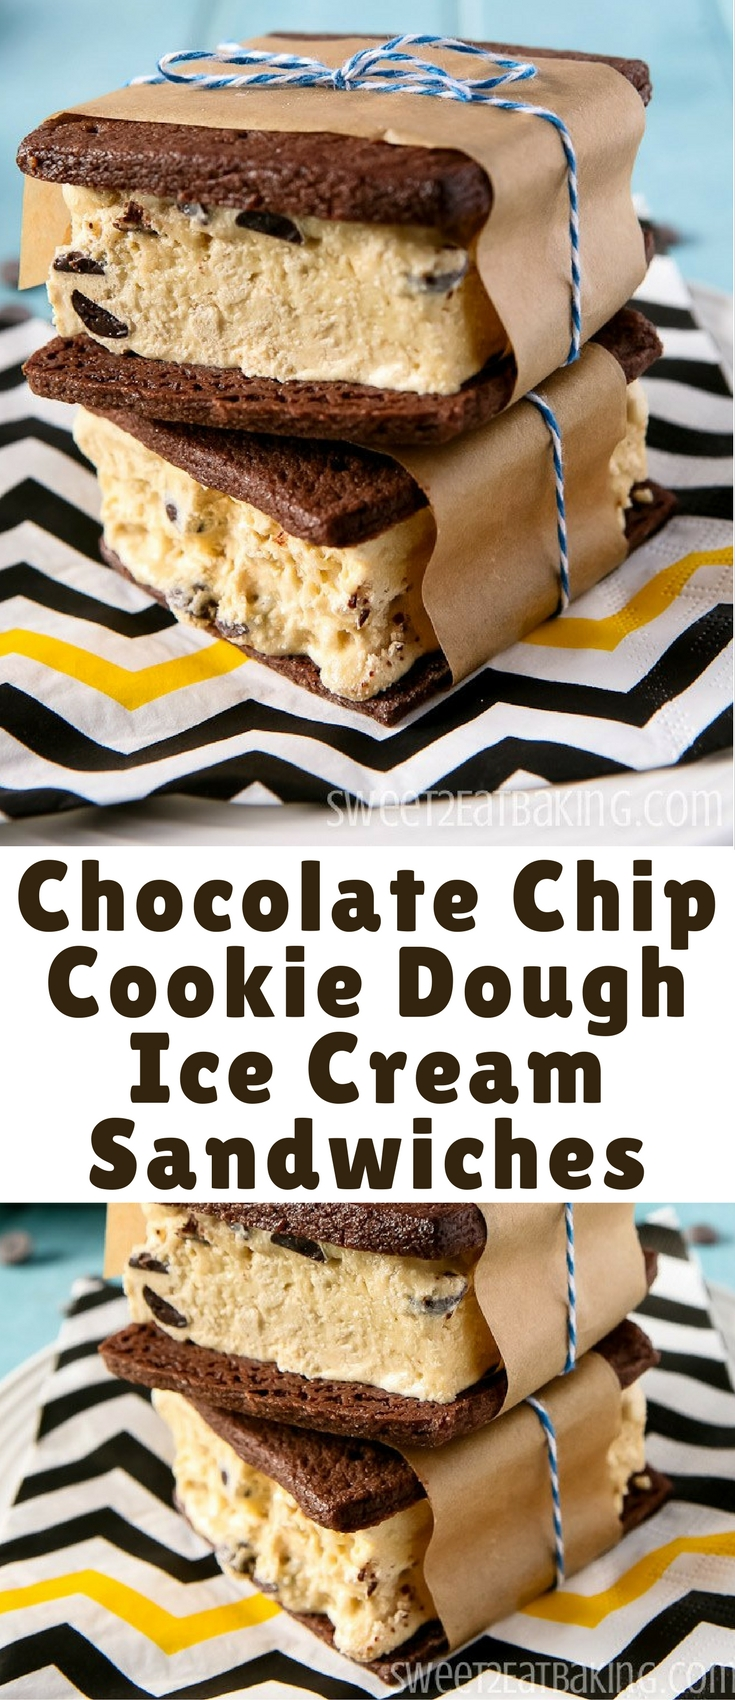 Beat the heat with this Chocolate Chip Cookie Dough Ice Cream Sandwiches recipe. Soft chewy chocolate cookies filled with a generous serving of delicious cookie dough ice cream.